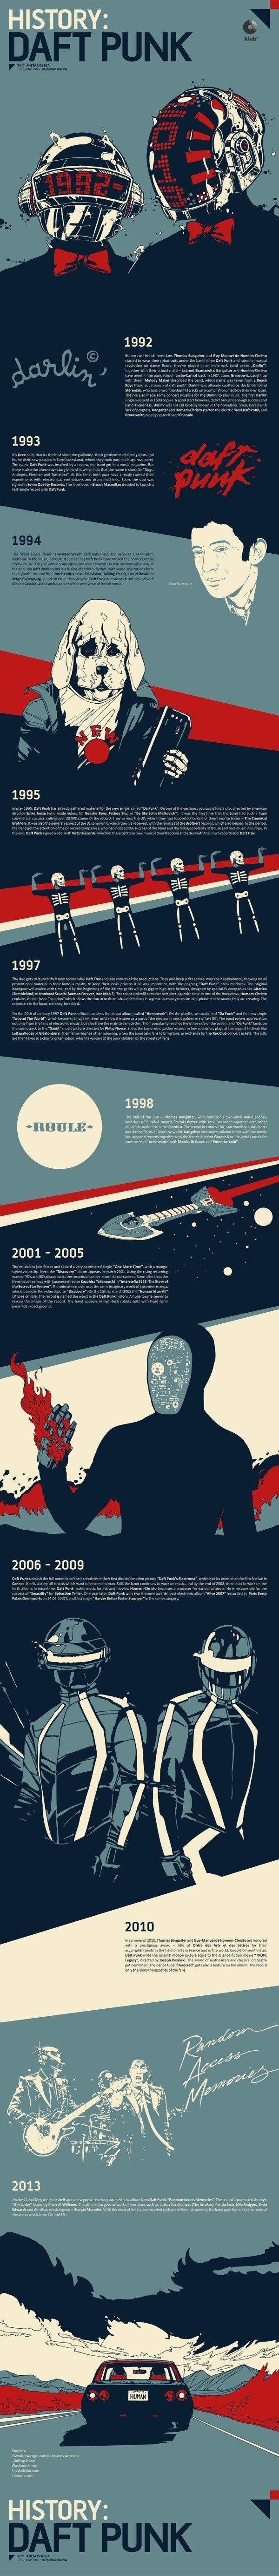 Unique Infographic Design, History Of Daft Punk #Infographic #Design (http://www.pinterest.com/aldenchong/)